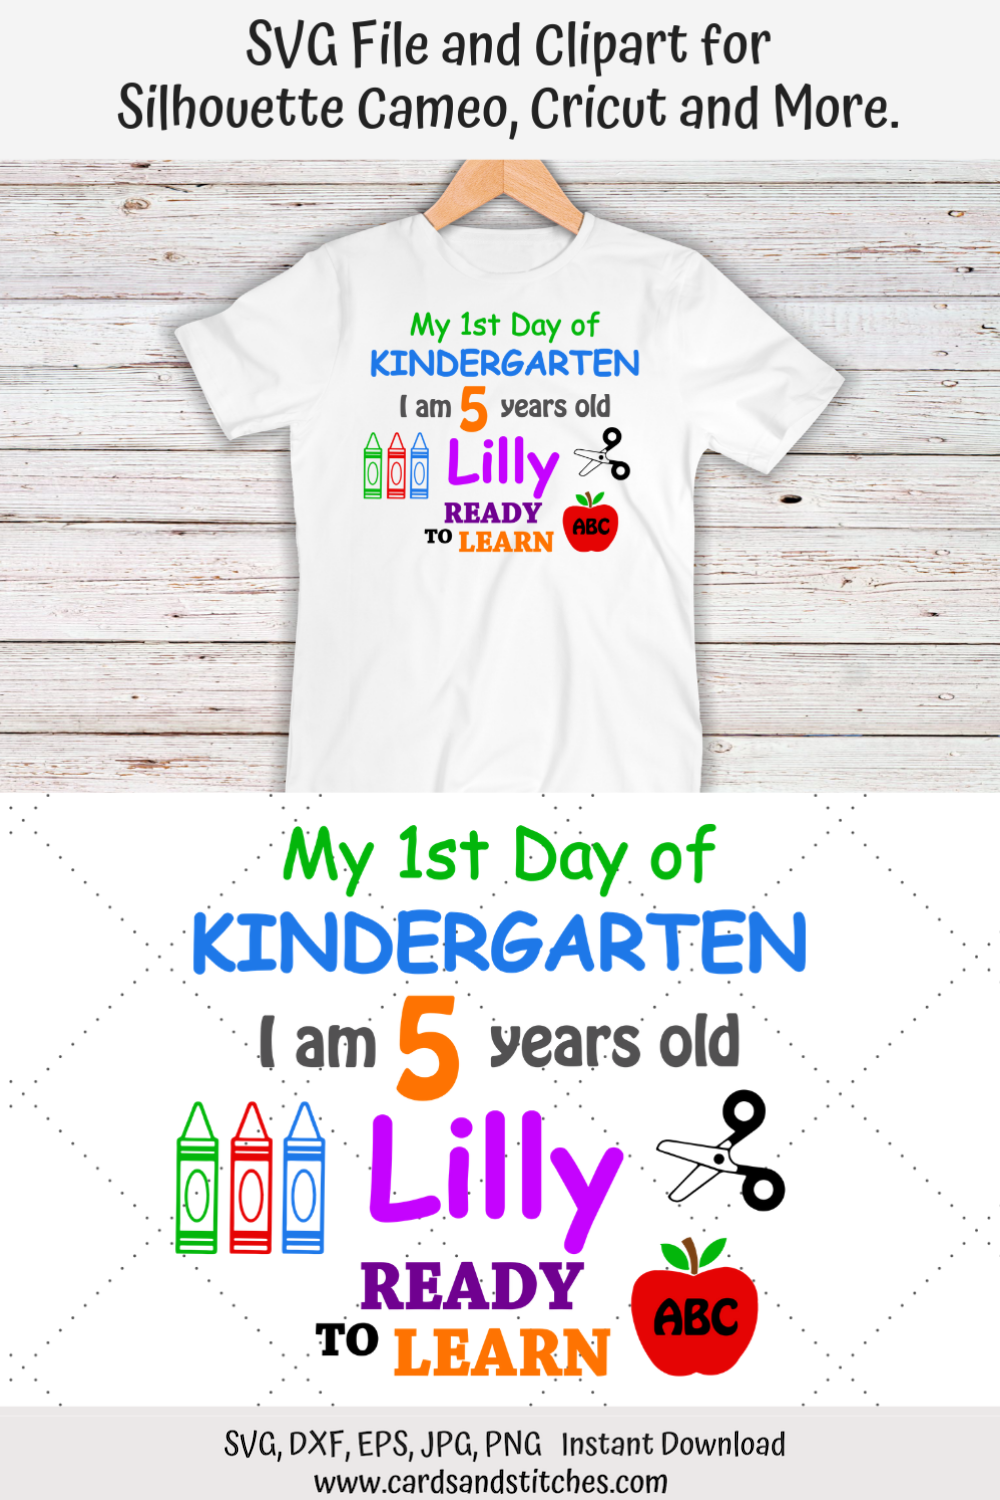 This Kindergarten Svg File And Clipart Is Perfect For Any